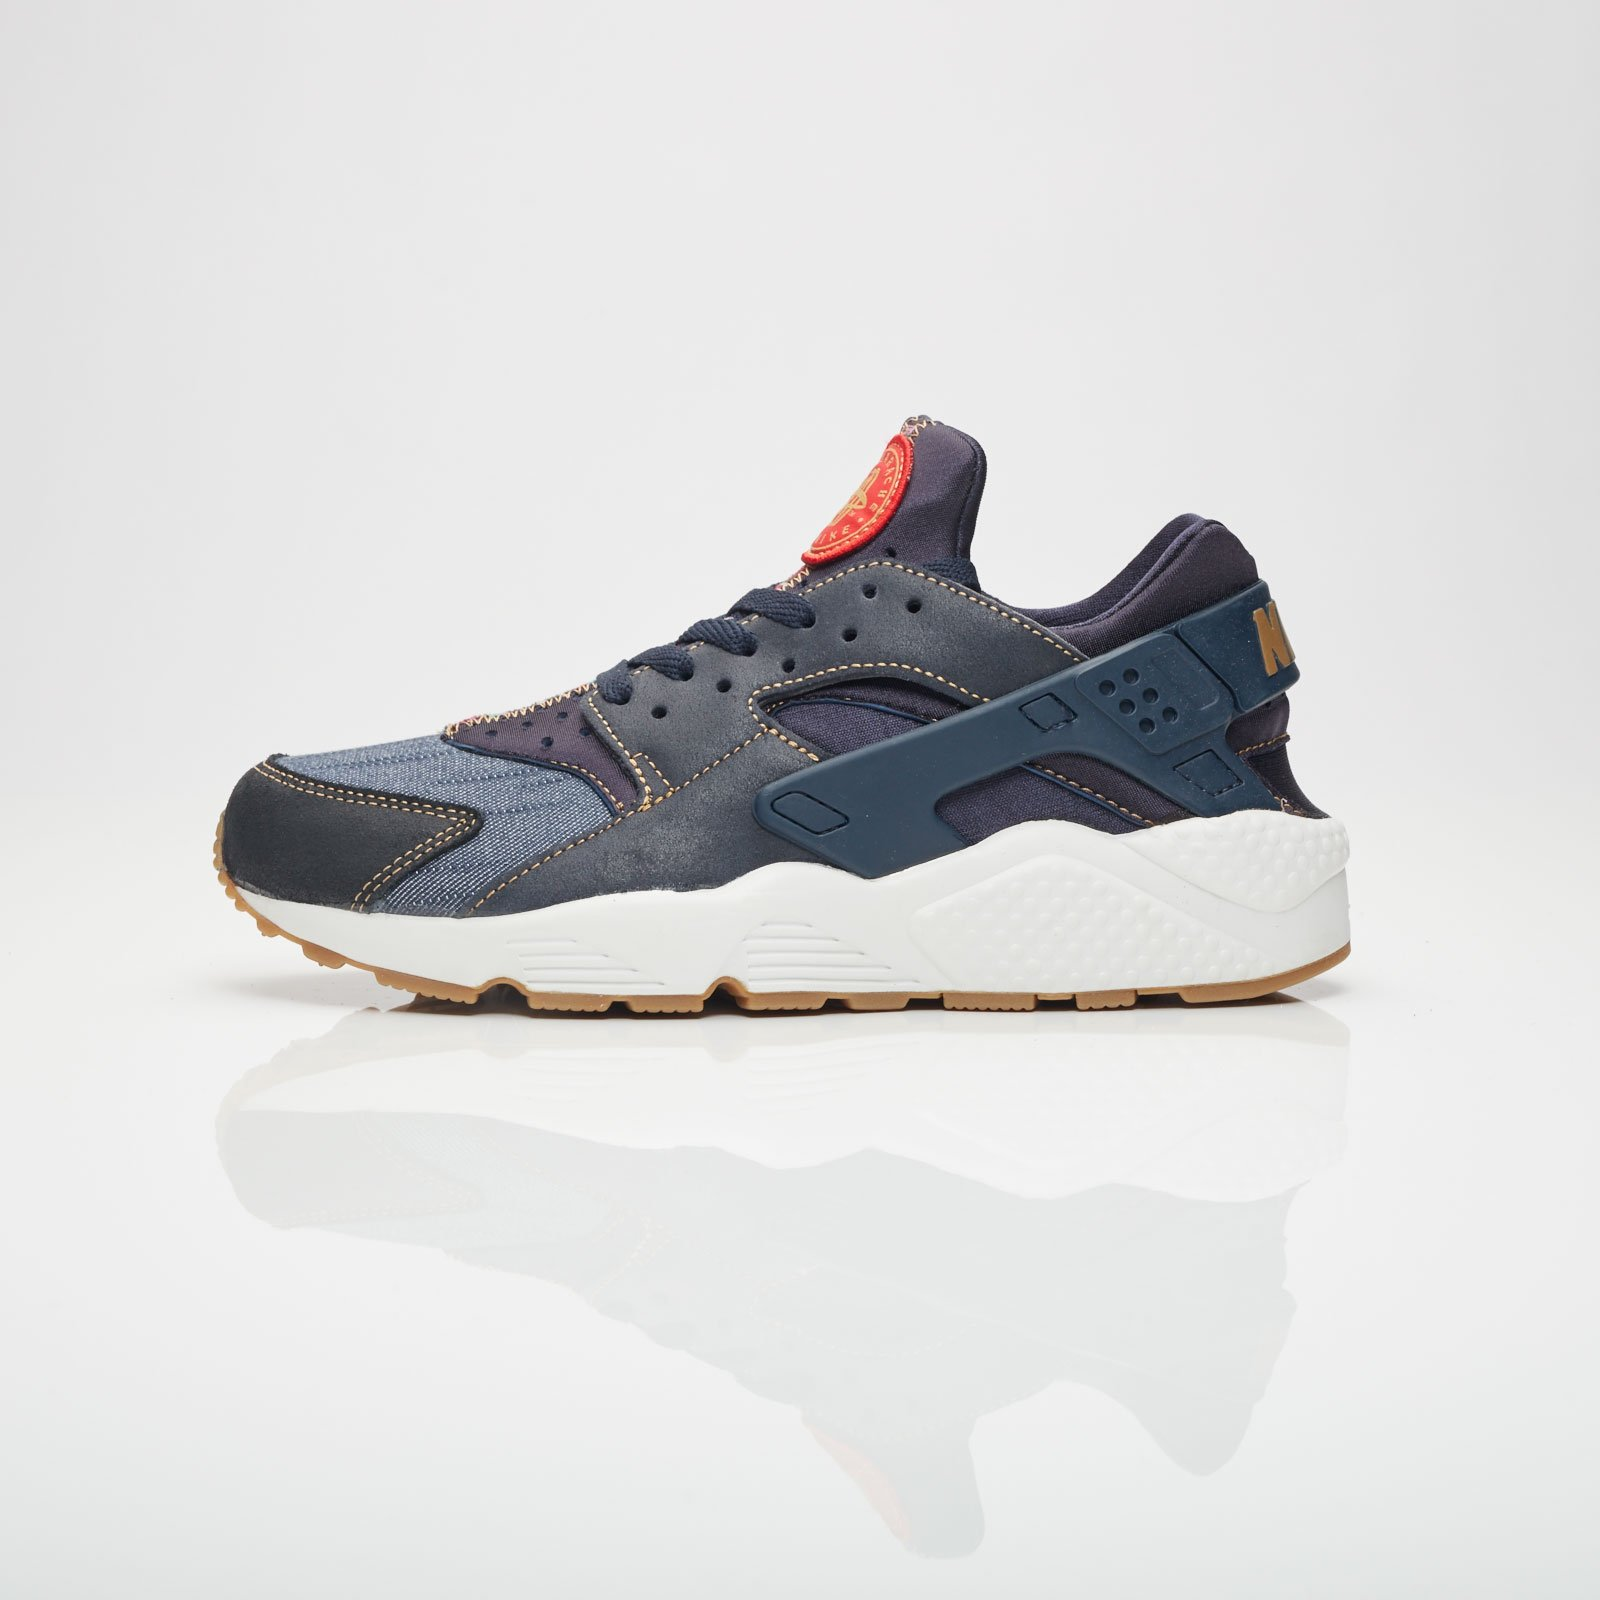 69a2497400794 Nike Air Huarache Run SE - 852628-403 - Sneakersnstuff